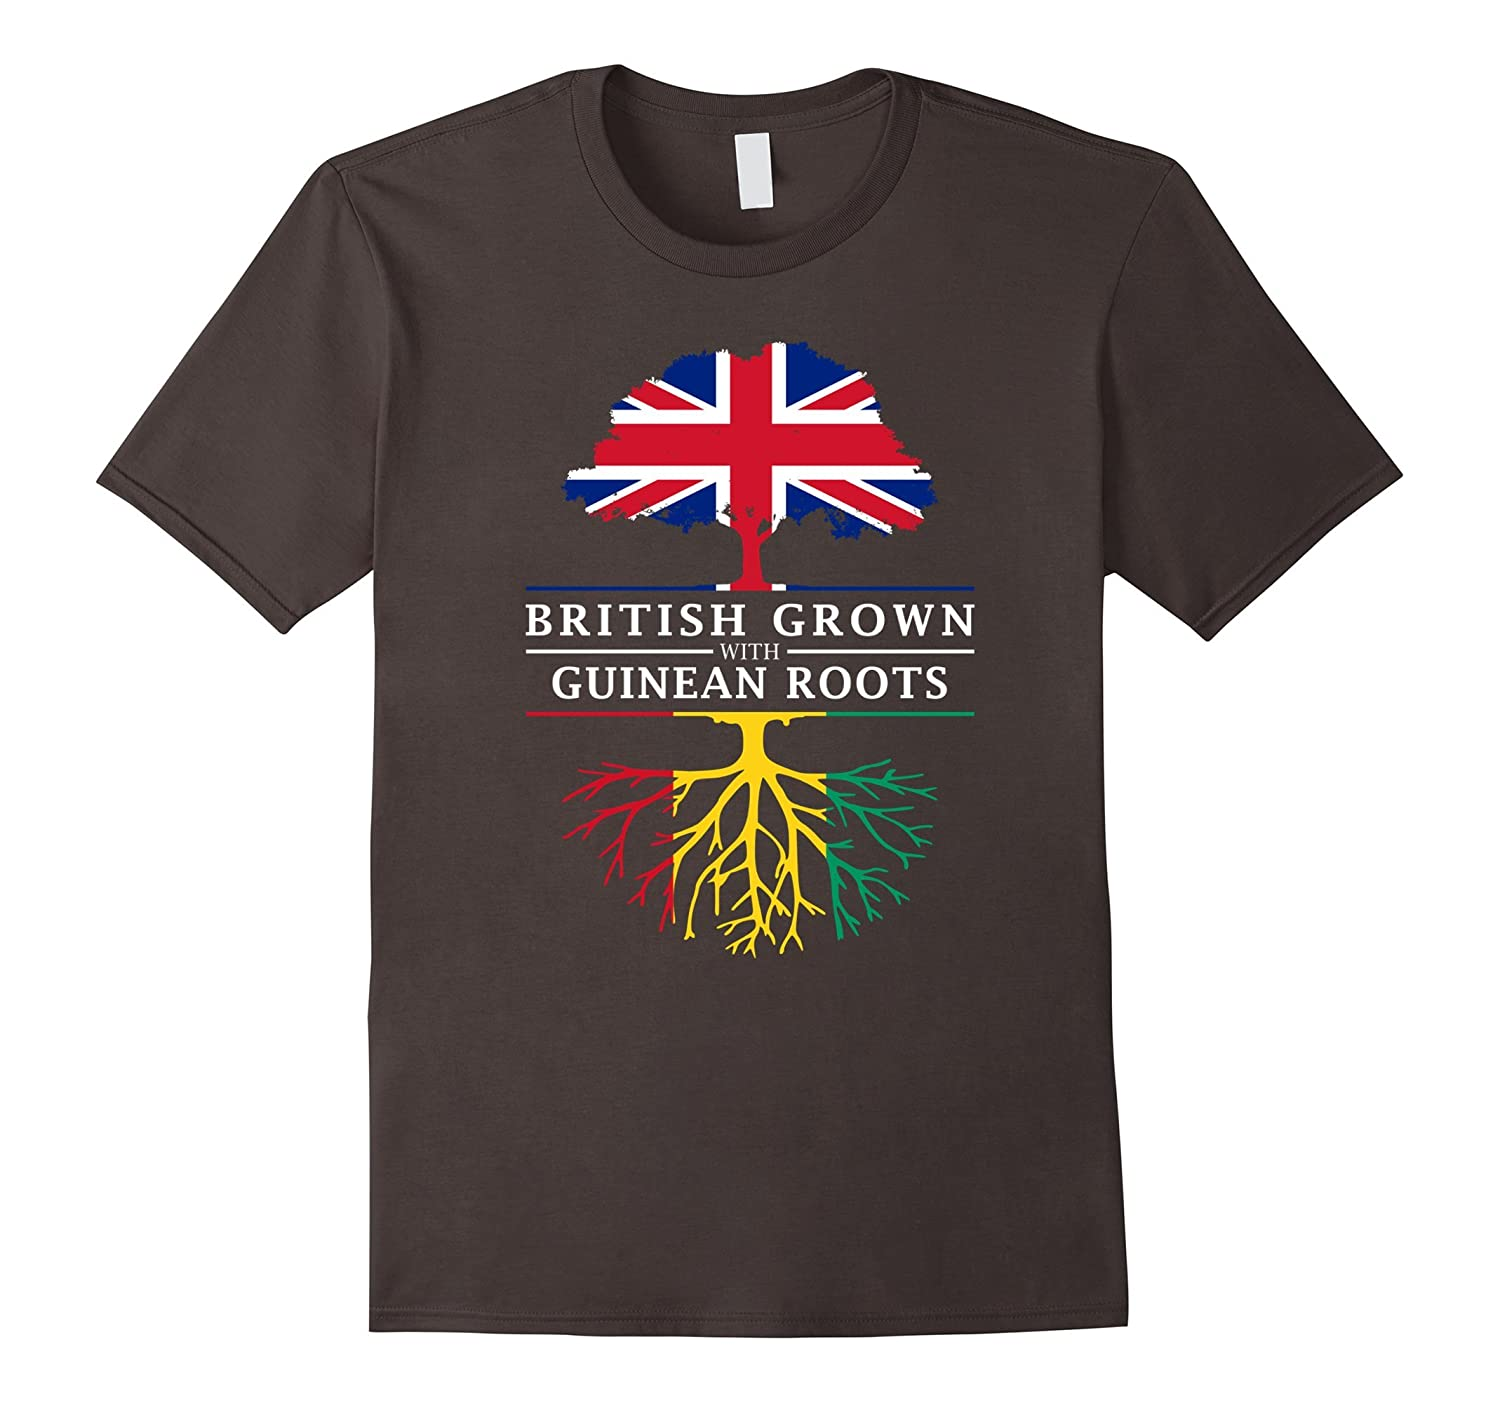 British Grown with Guinean Roots T-Shirt - Guinea Shirt-CD